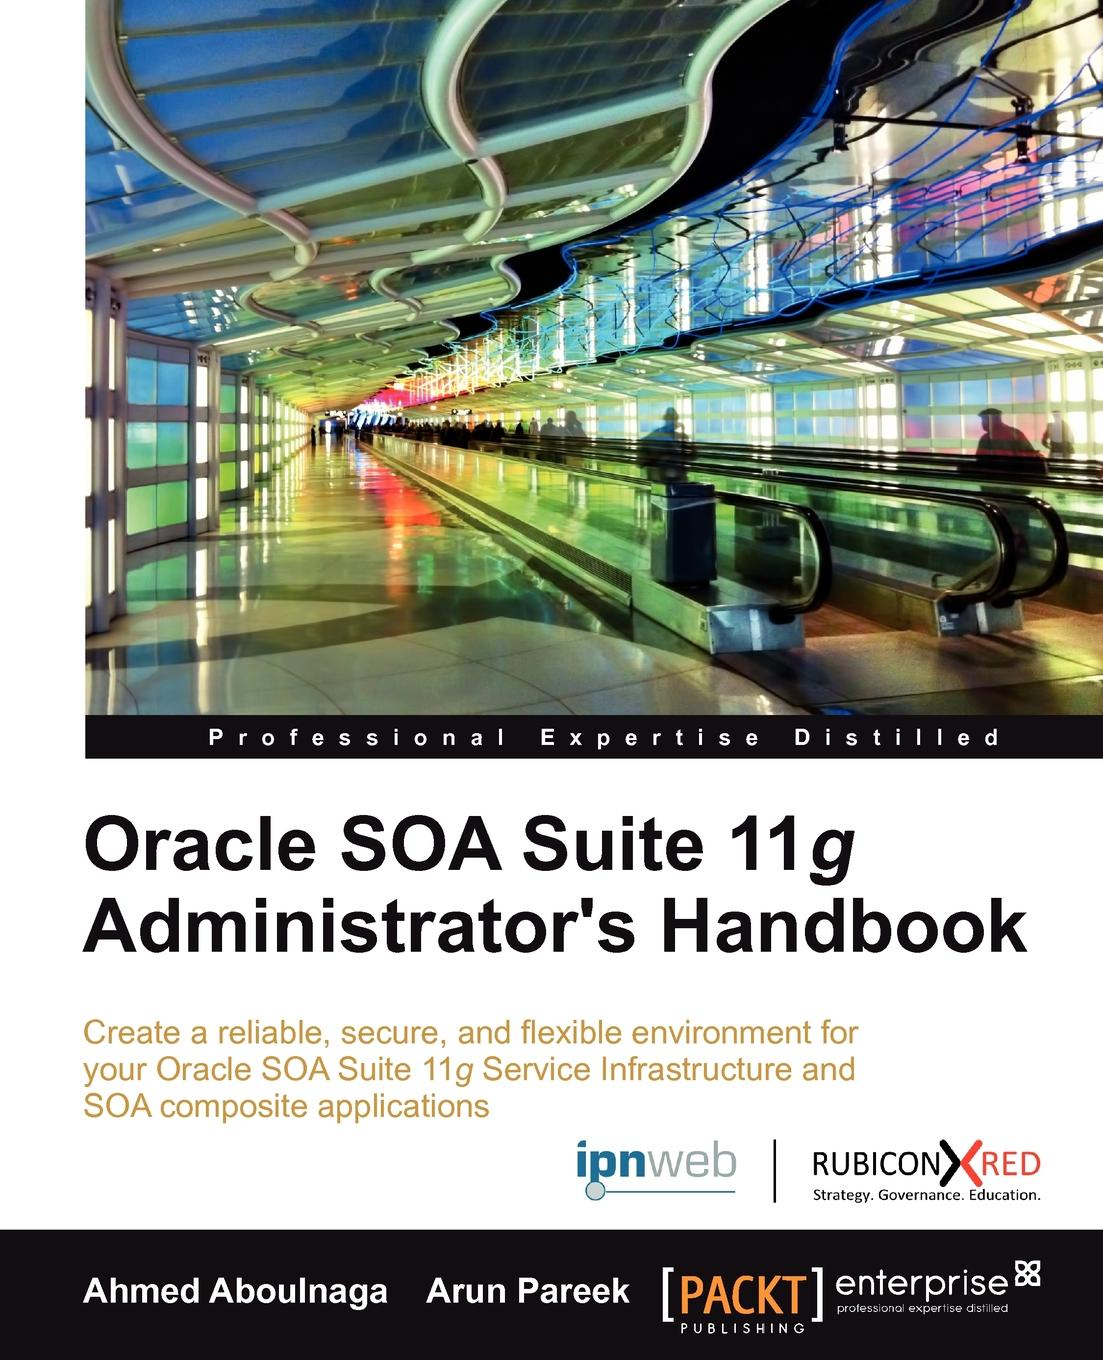 Ashraf Aboulnaga, Ahmed Aboulnaga, Arun Pareek Oracle Soa Suite 11g Administrator's Handbook недорго, оригинальная цена